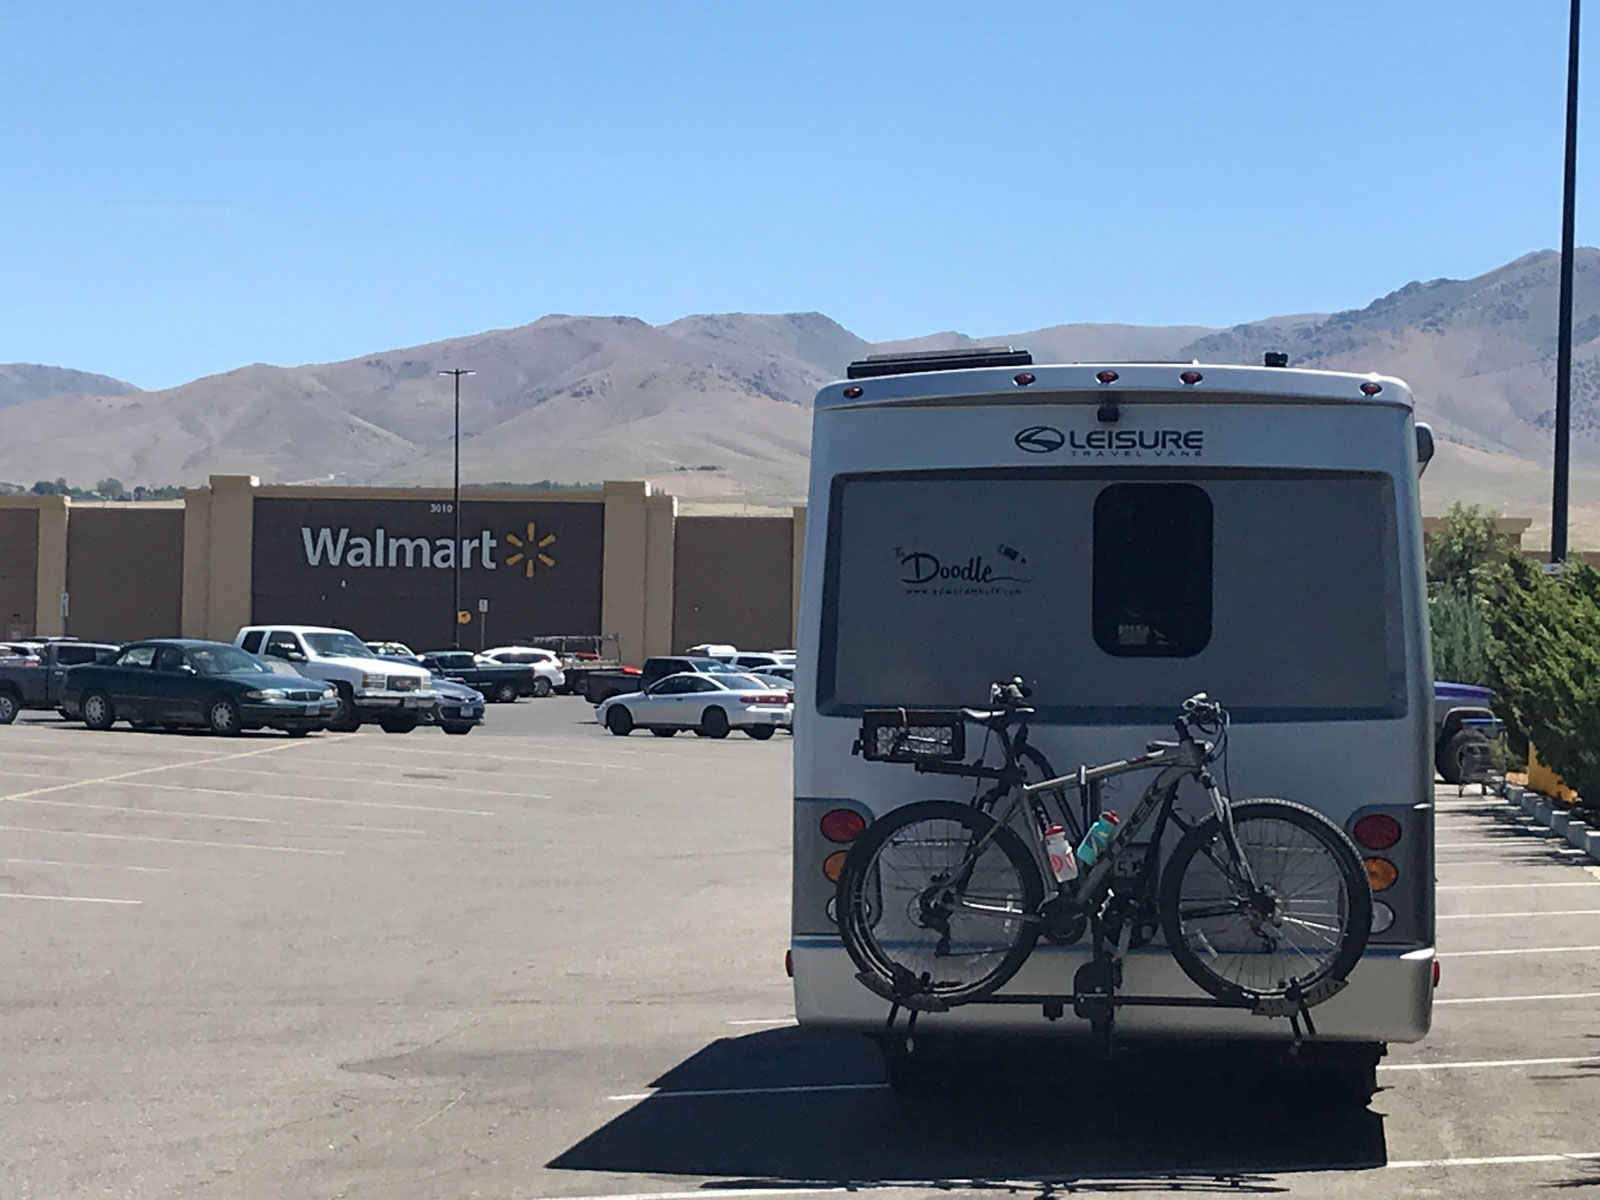 Walmart, there is always a Walmart. . .